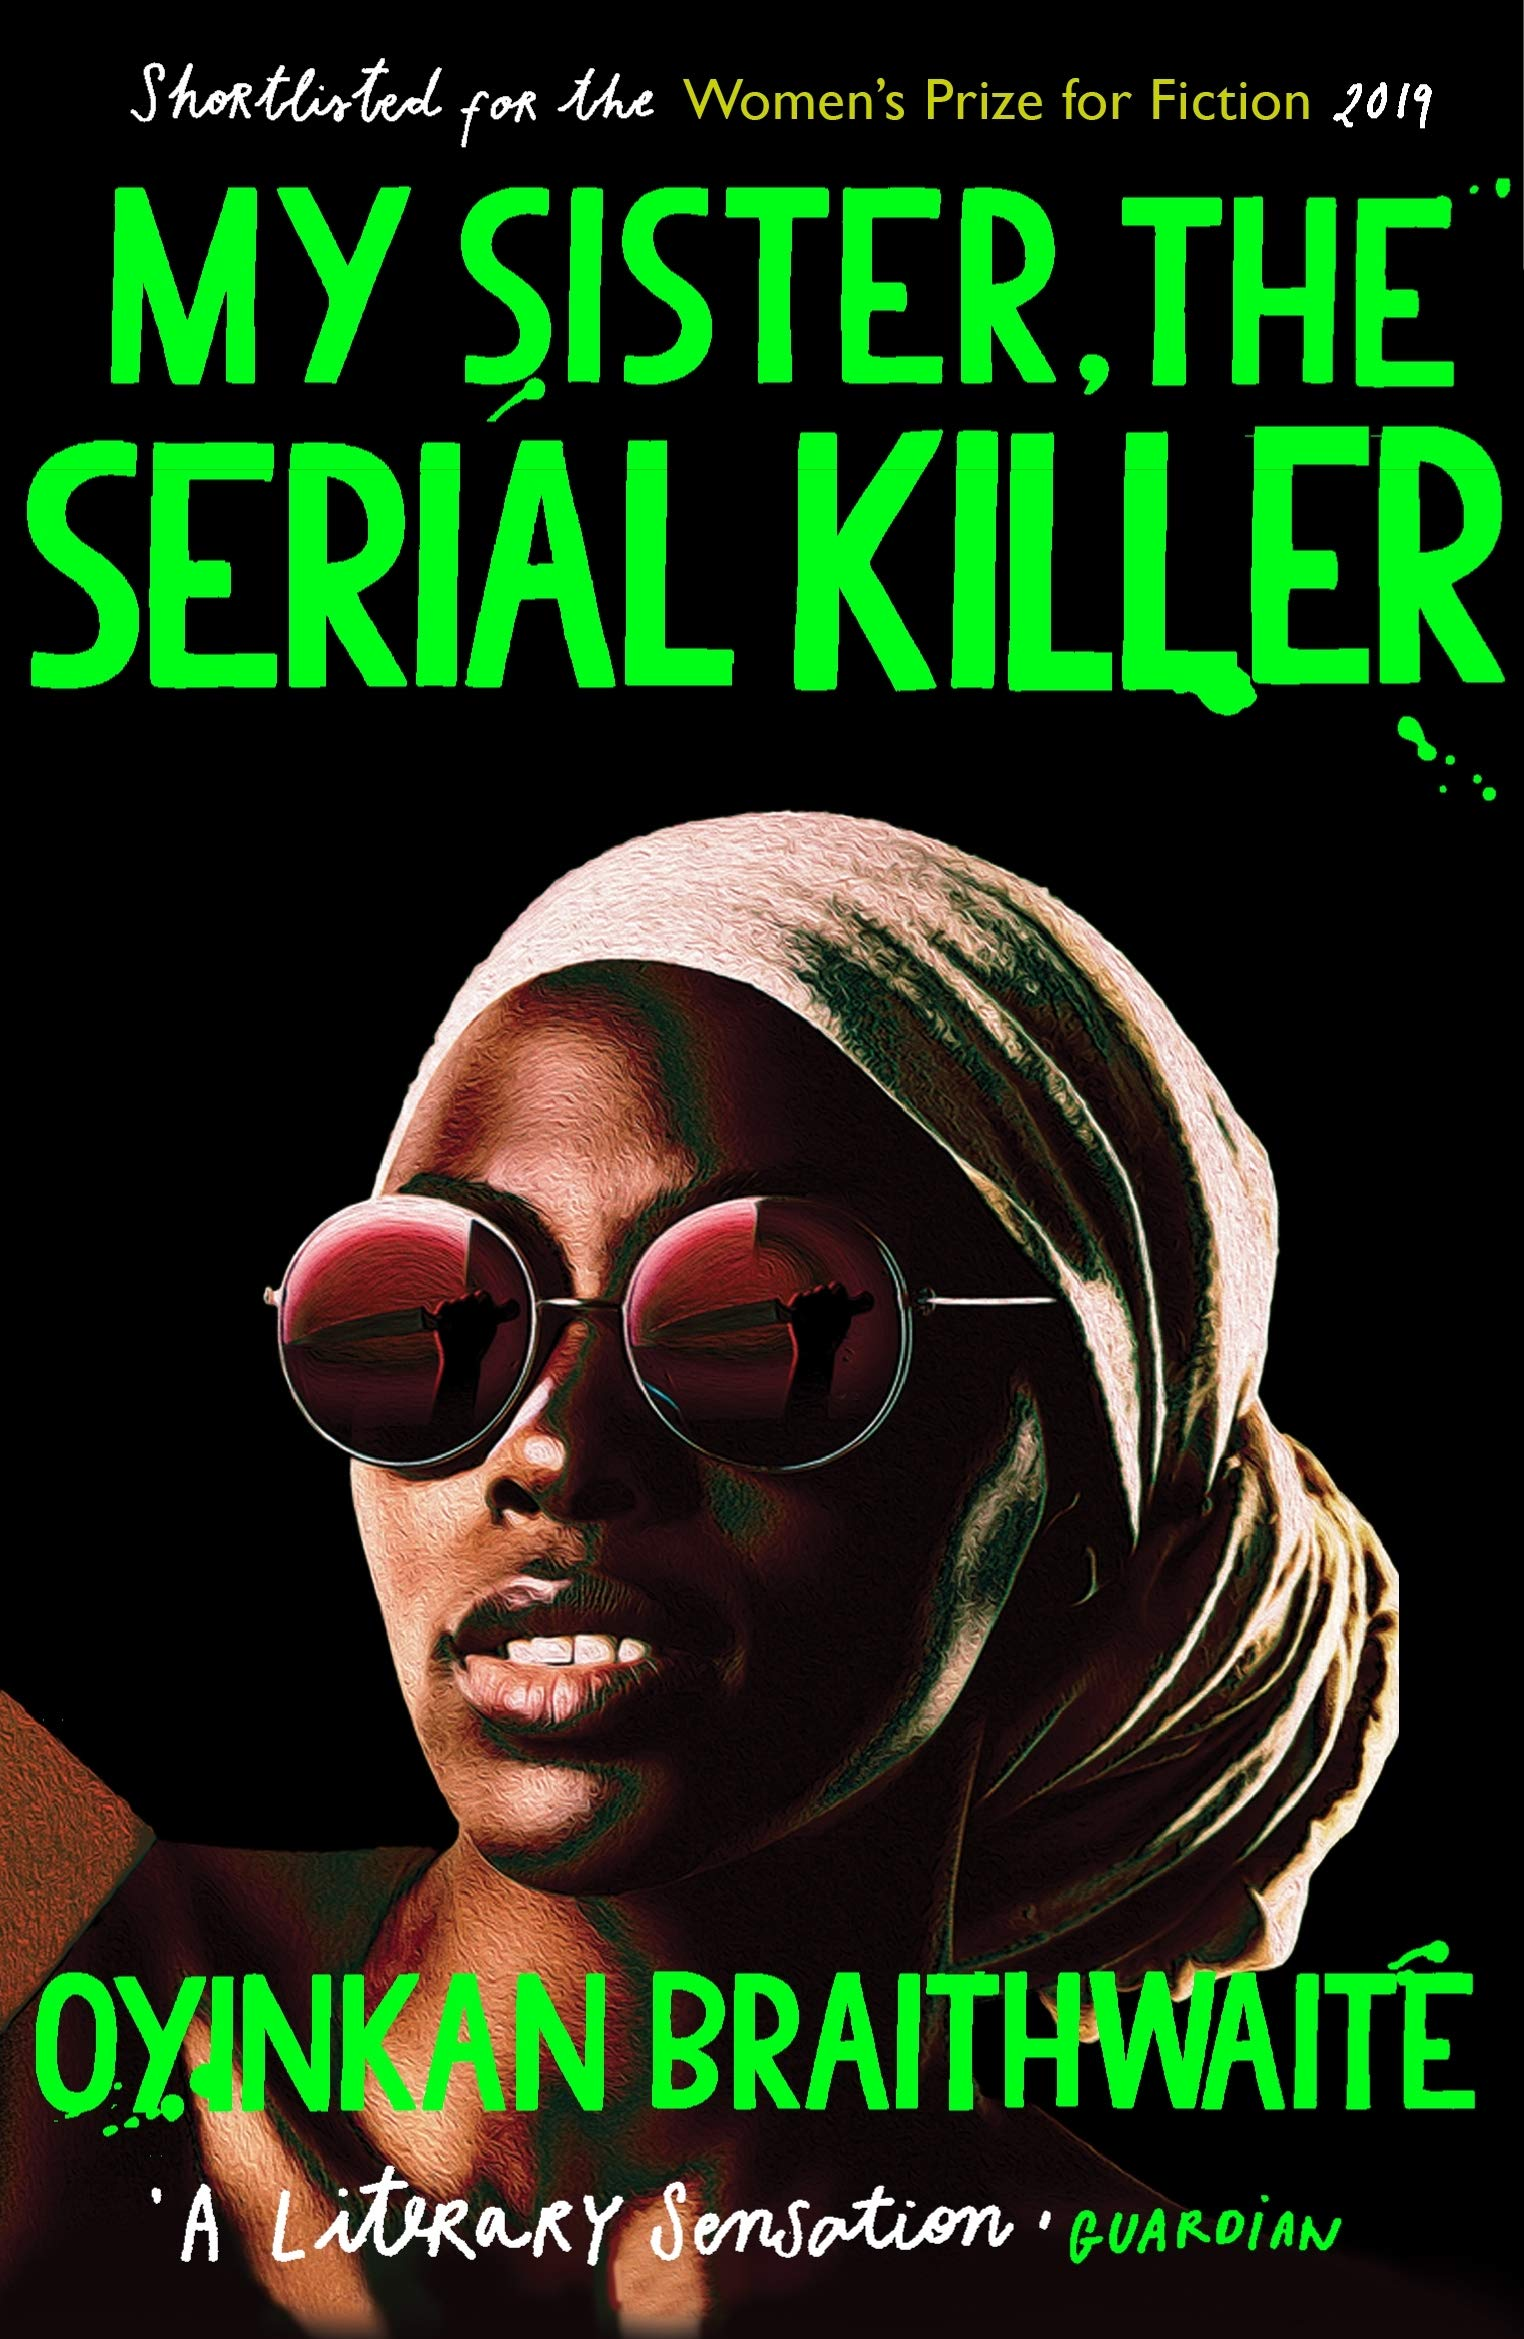 Oyinkan Braithwaite: My Sister the Serial Killer